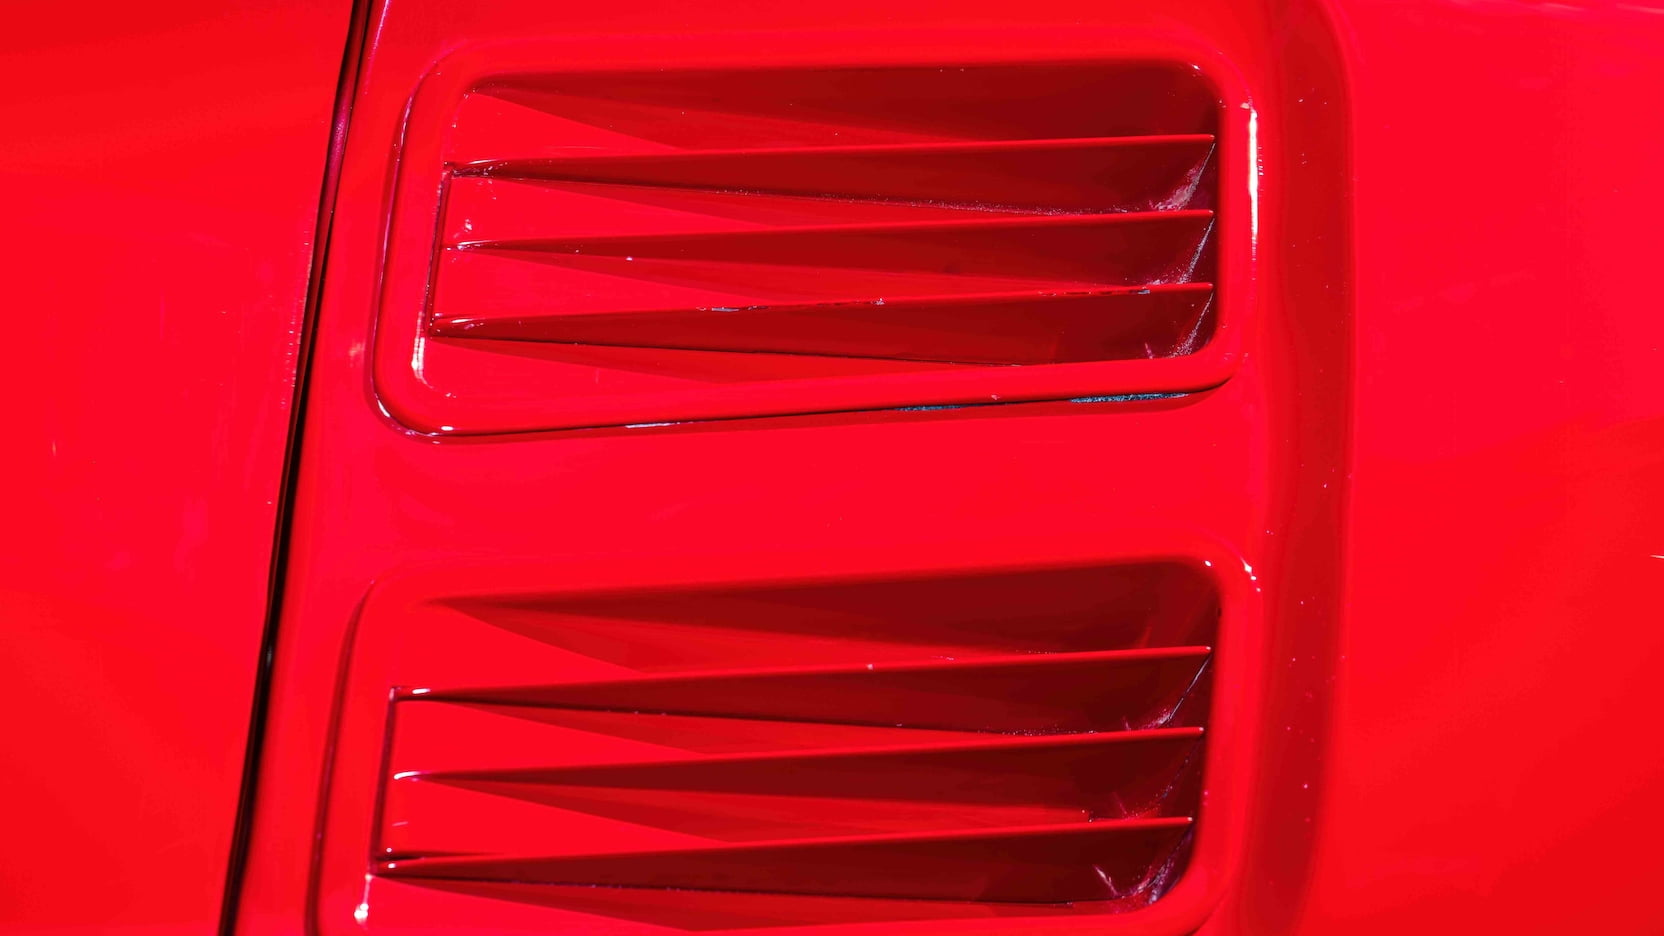 1967 Ford Mustang Holman-Moody Racer vents